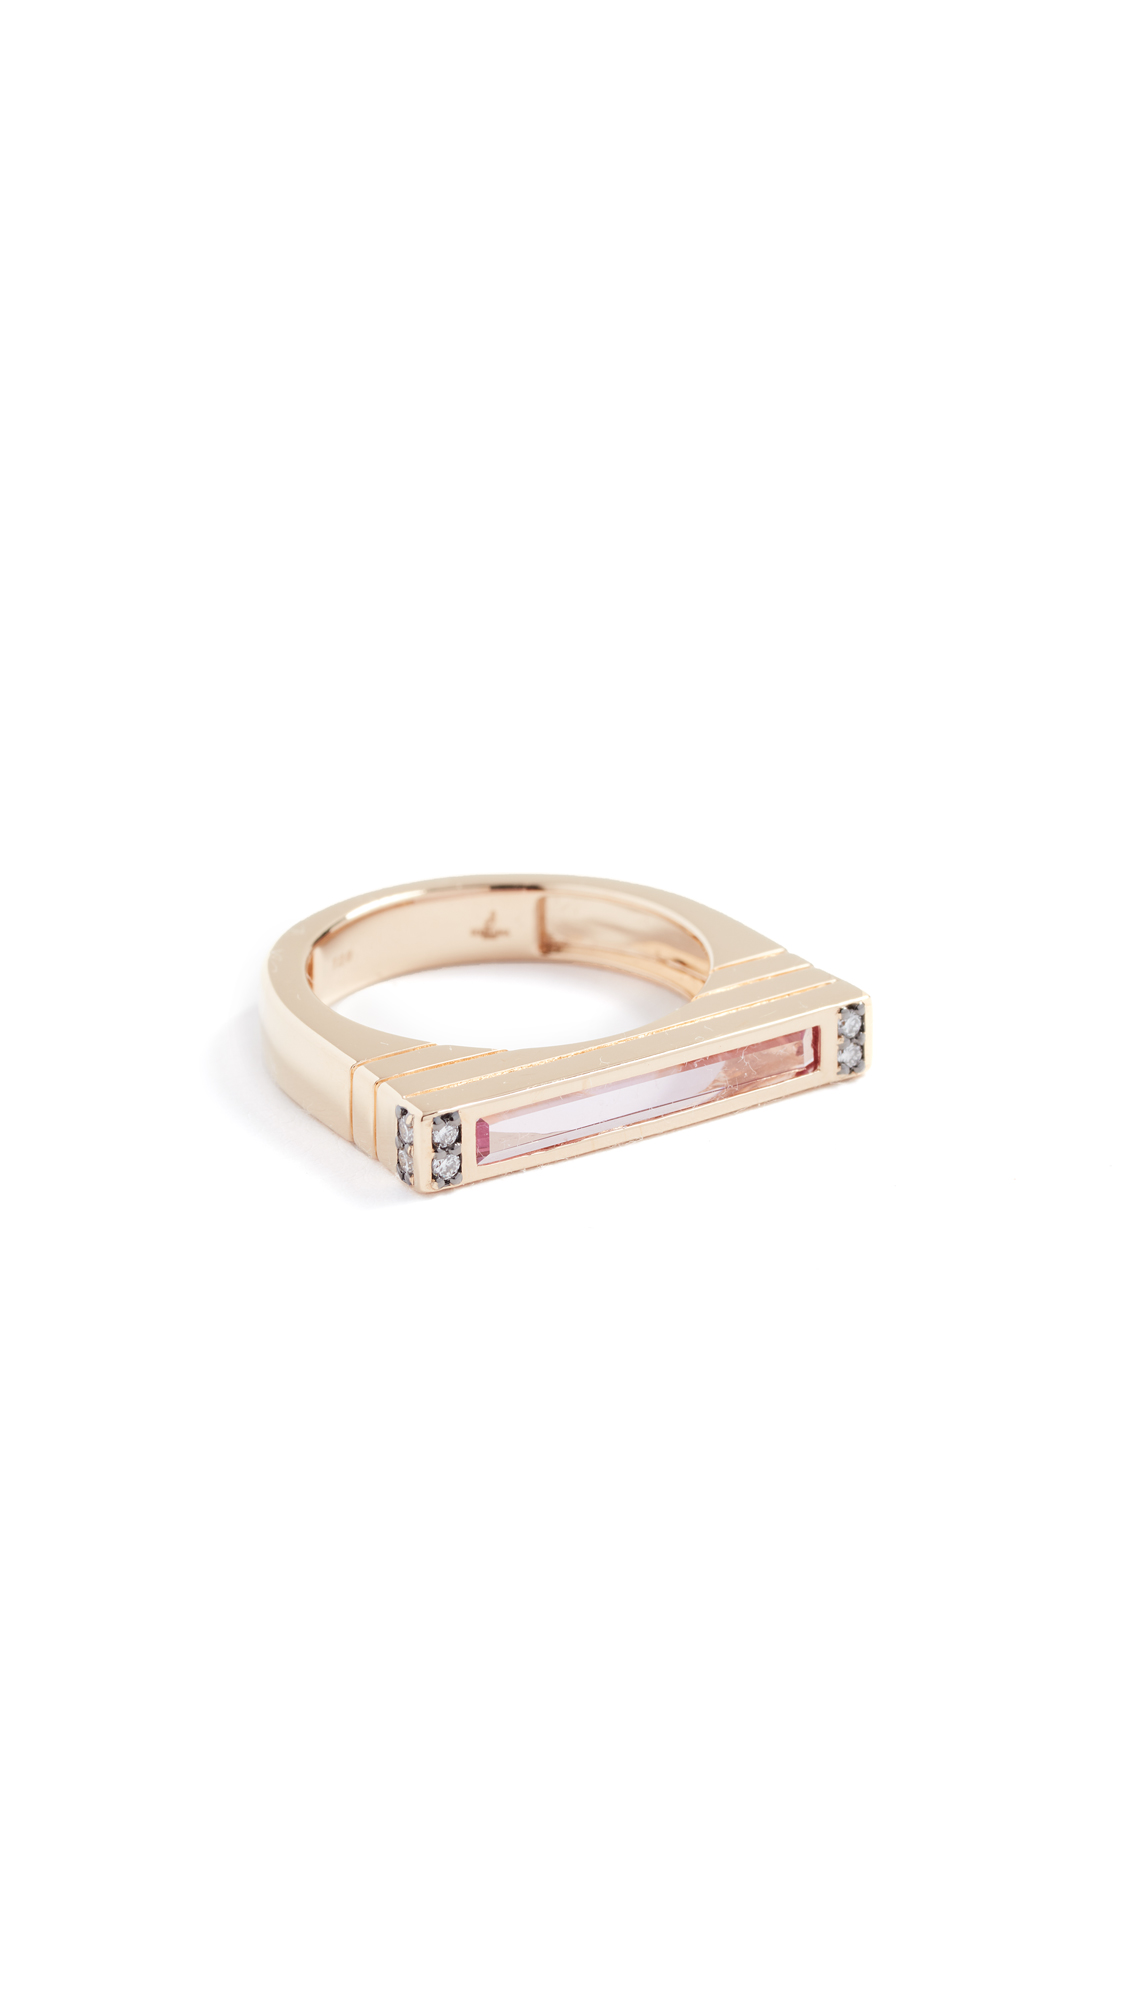 Sorellina 18K Gold Ring with Center Stone and Diamonds In Pink